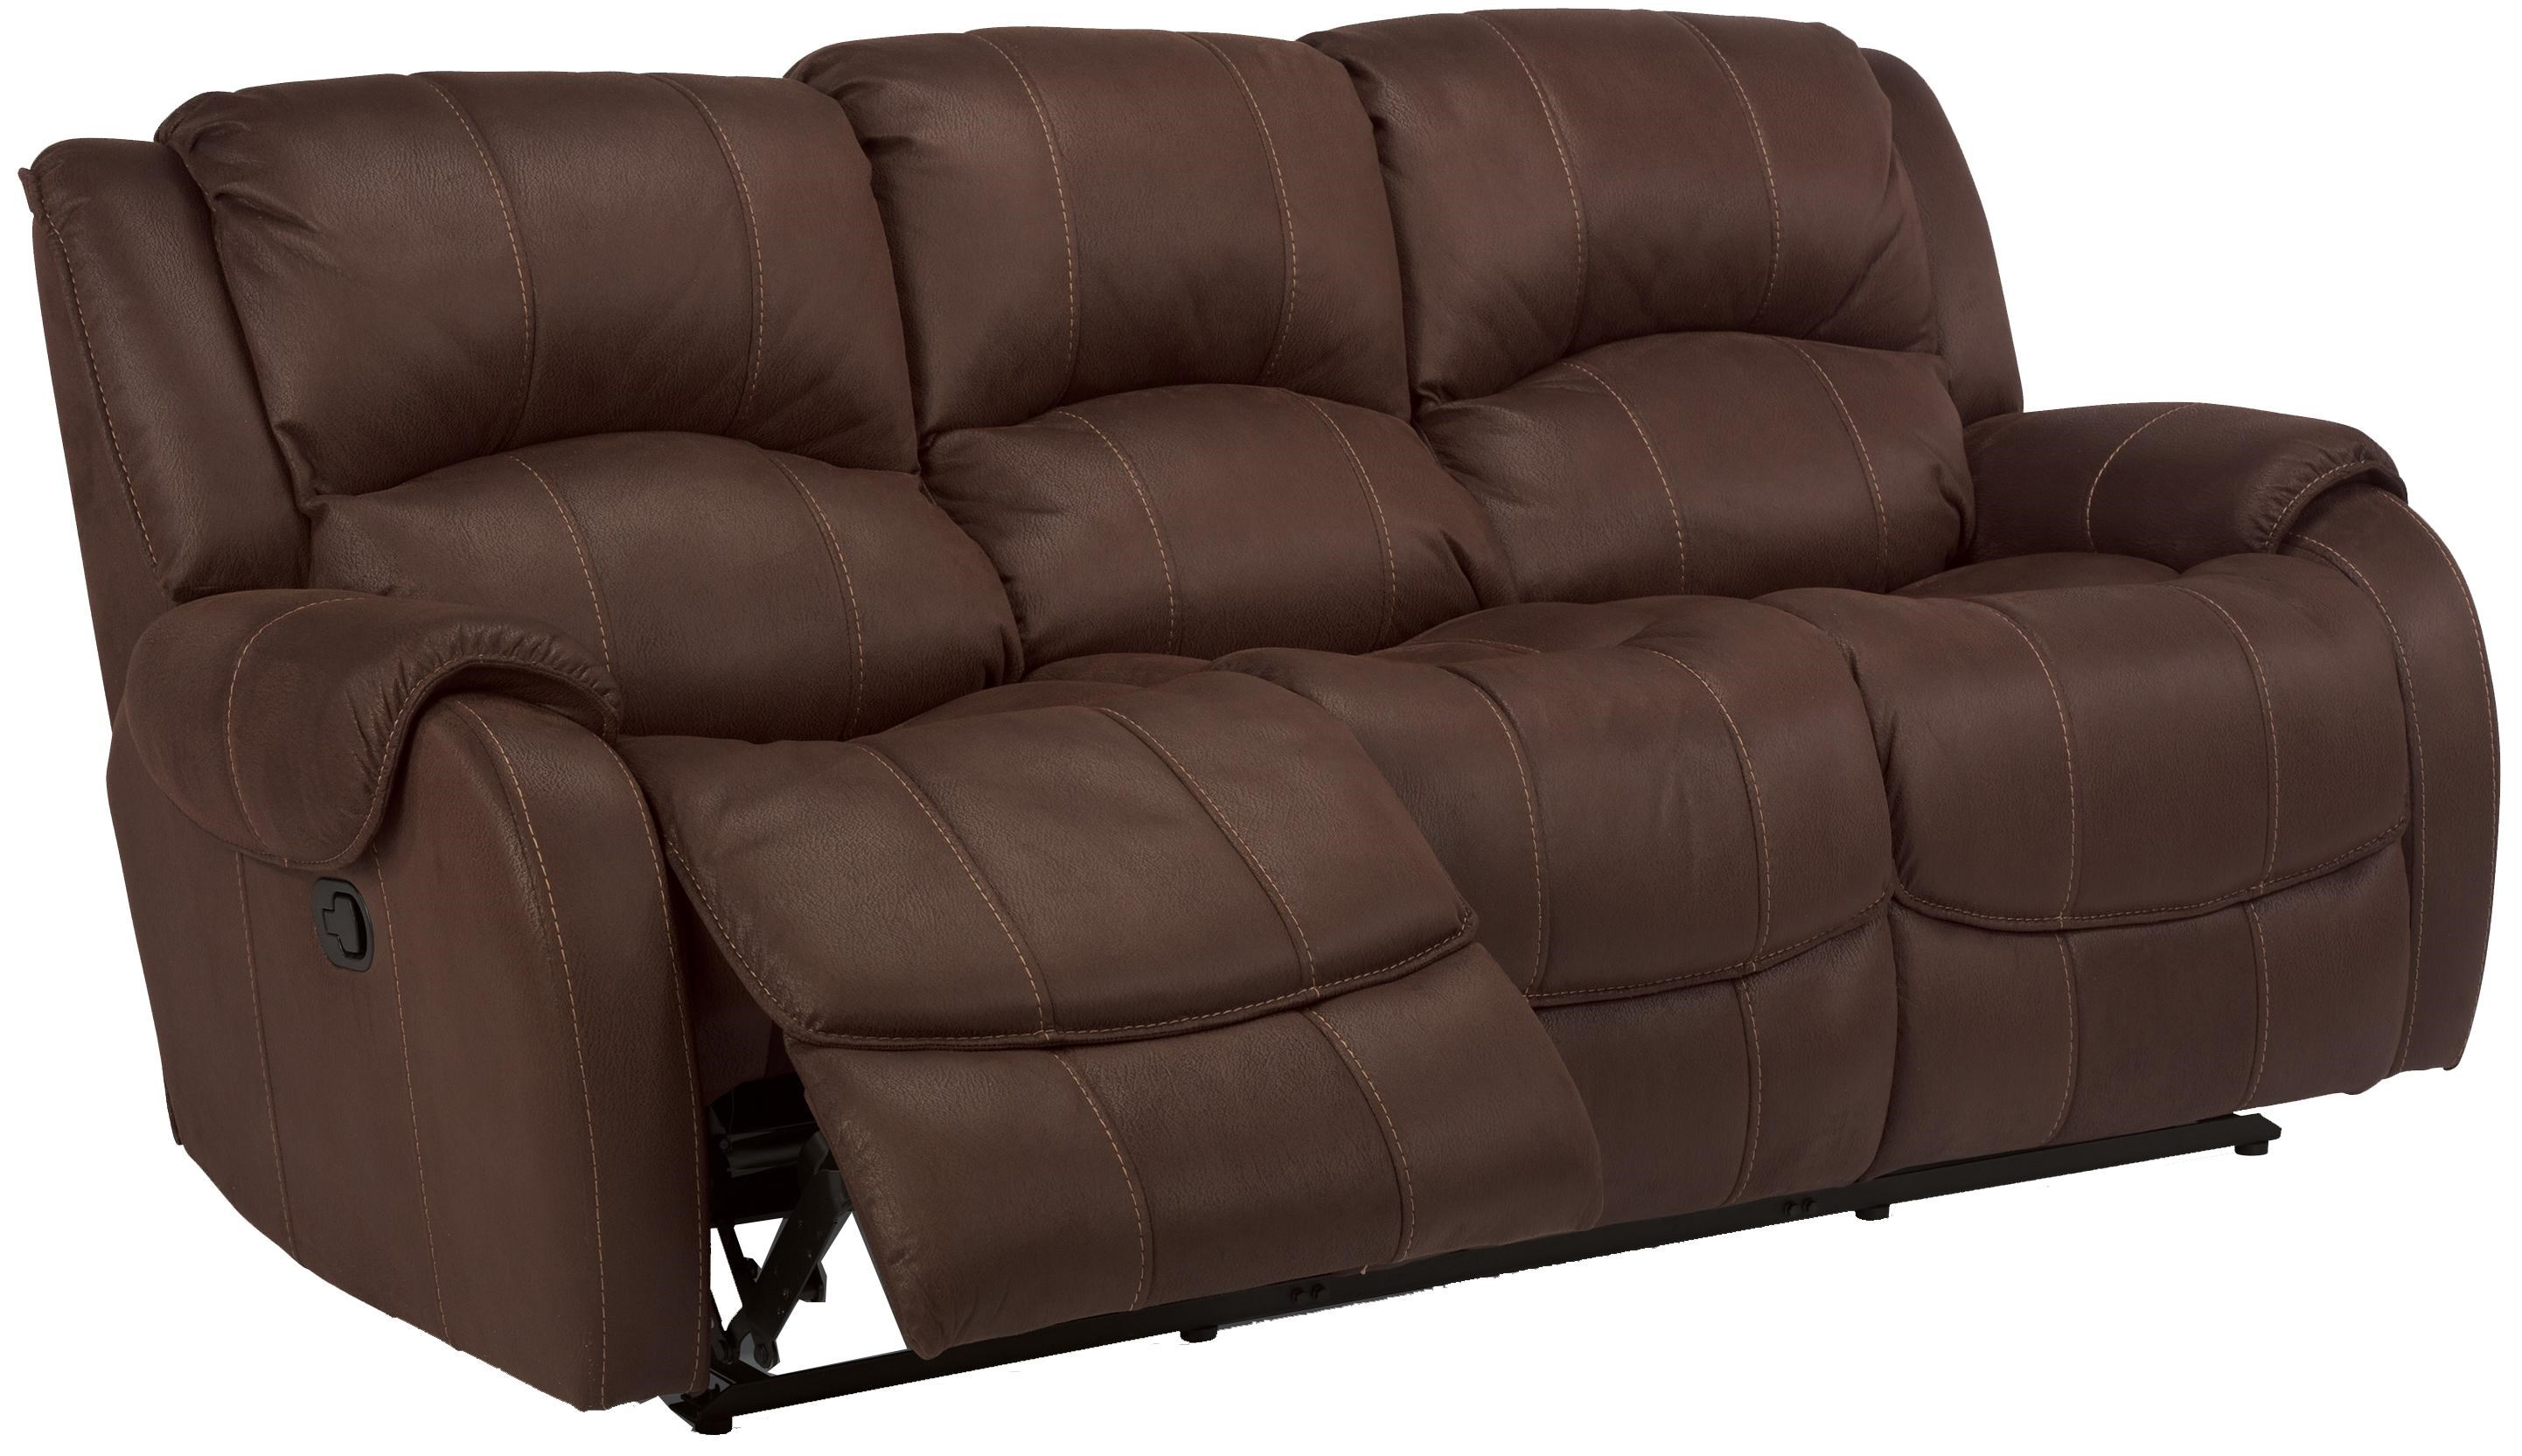 Flexsteel Latitudes -Pure Comfort Double Reclining Sofa with Pillow Top Arms - Furniture and ApplianceMart - Reclining Sofa  sc 1 st  Furniture and ApplianceMart : recliner pillow - islam-shia.org